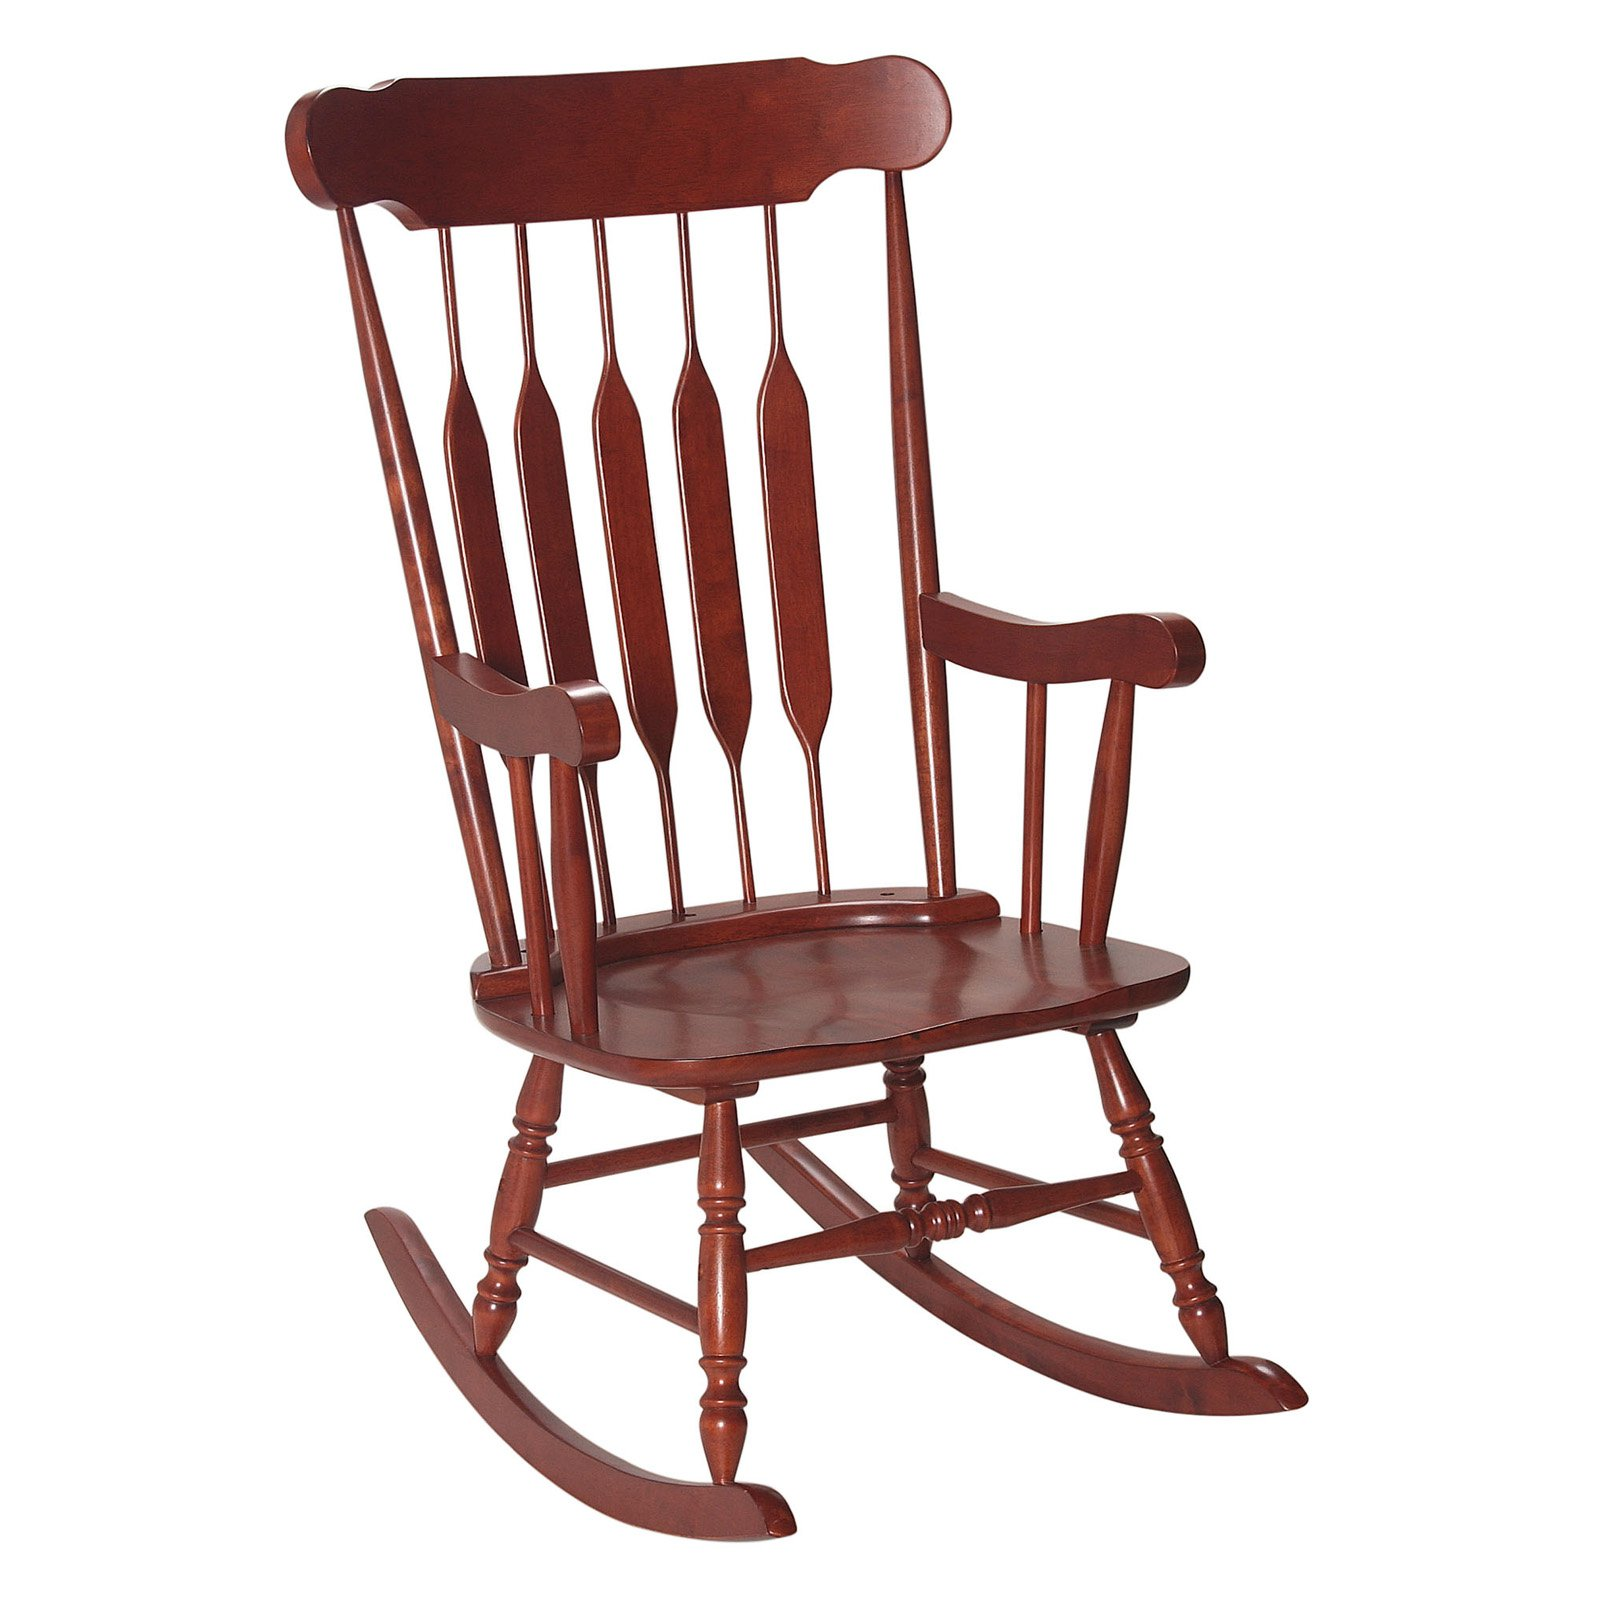 Adult Rocking Chair in Cherry Finish